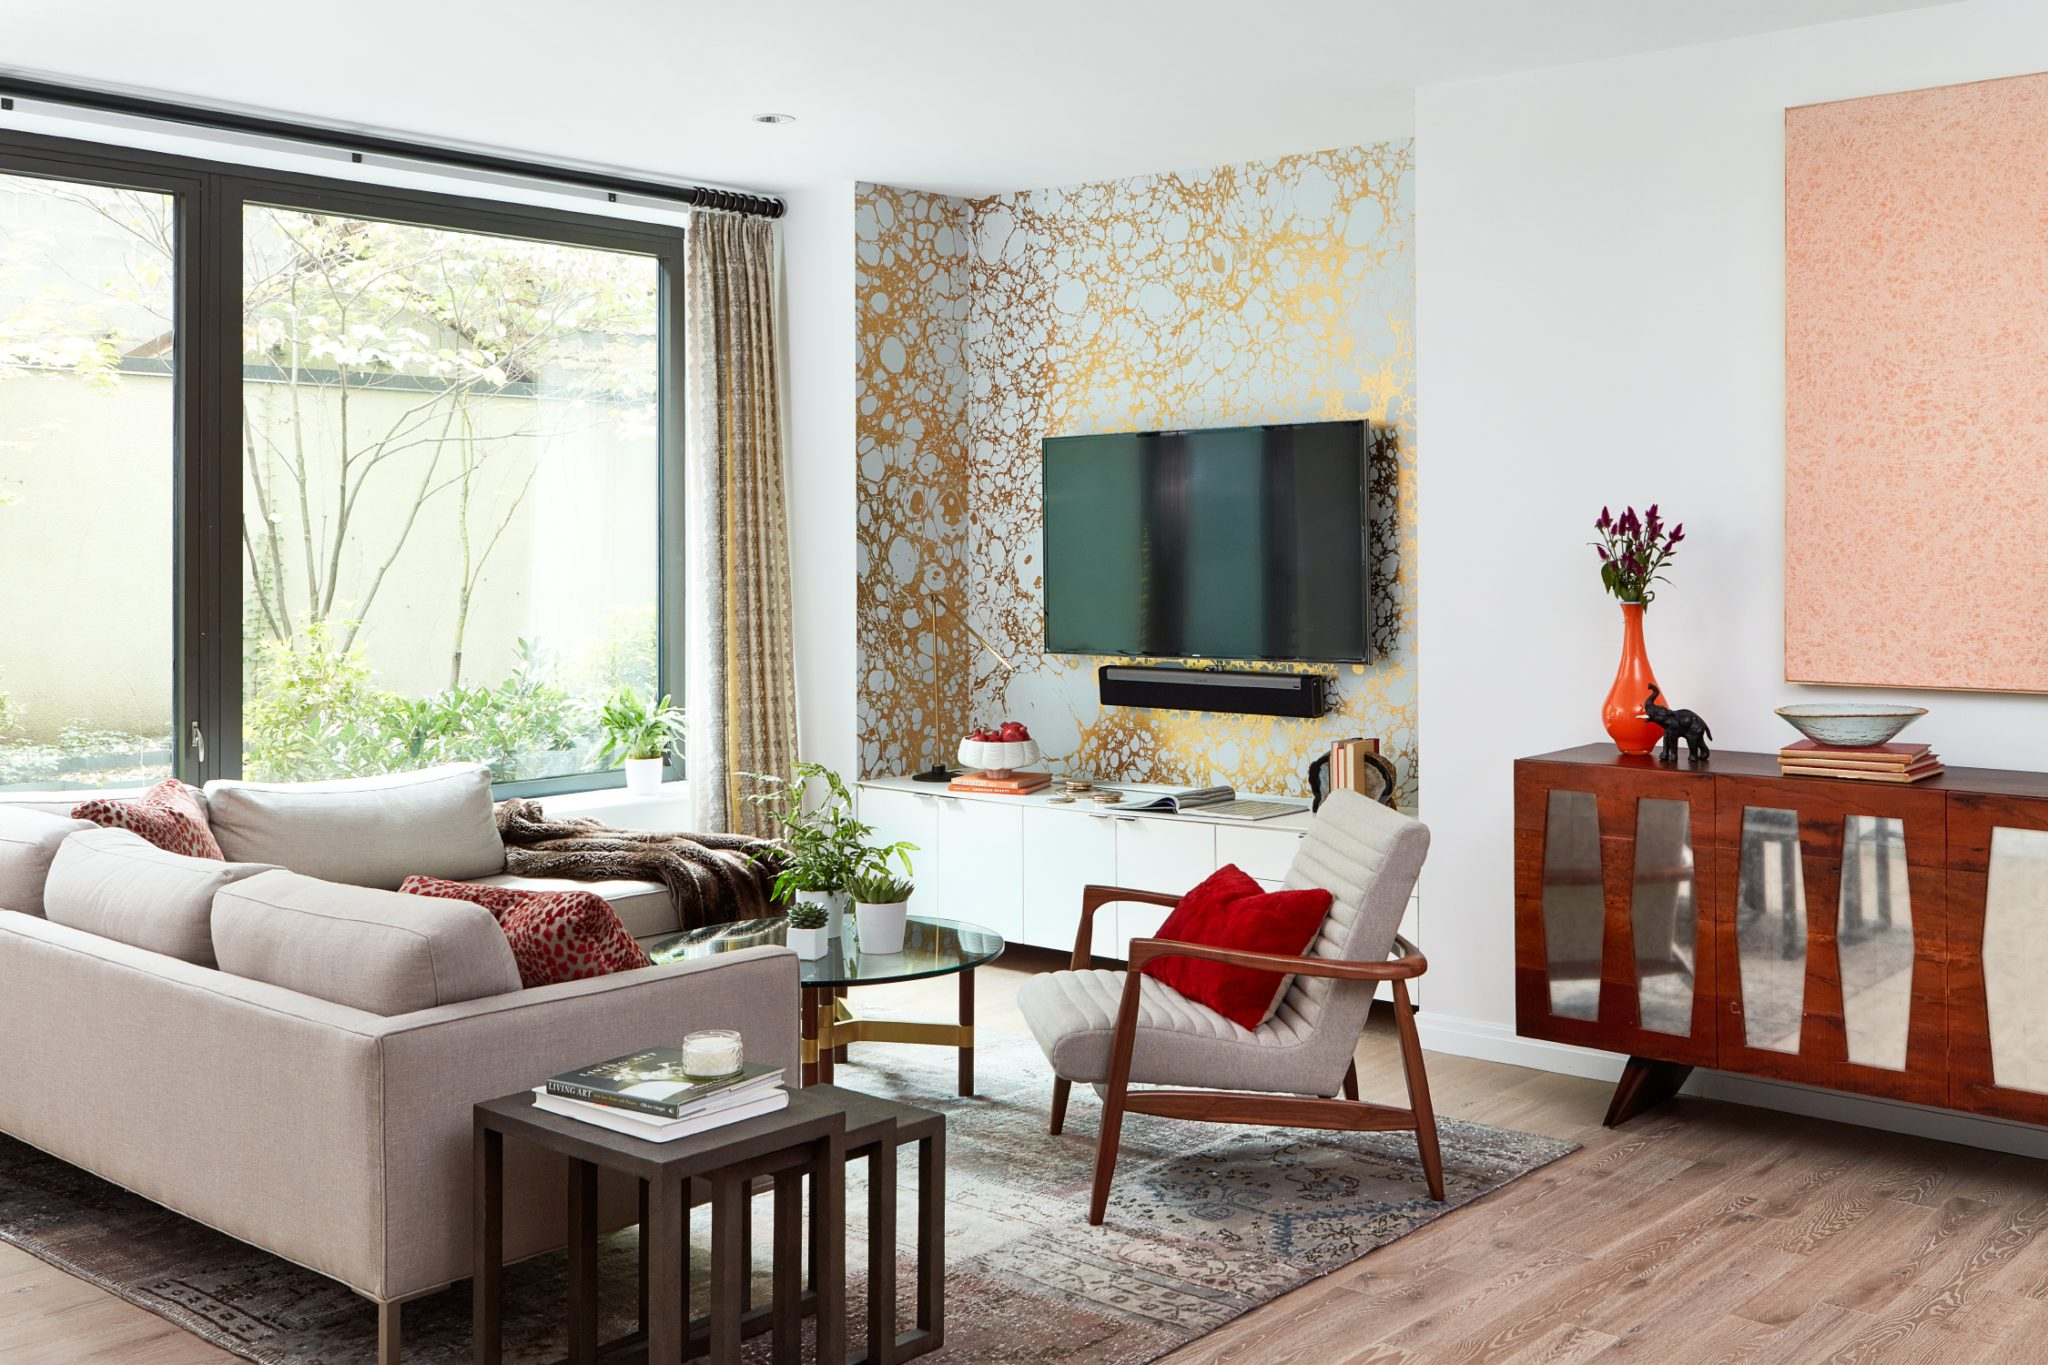 Manhattan Mid-Century living room with calico wallpaper and outdoor space by Allison Garcy Interiors